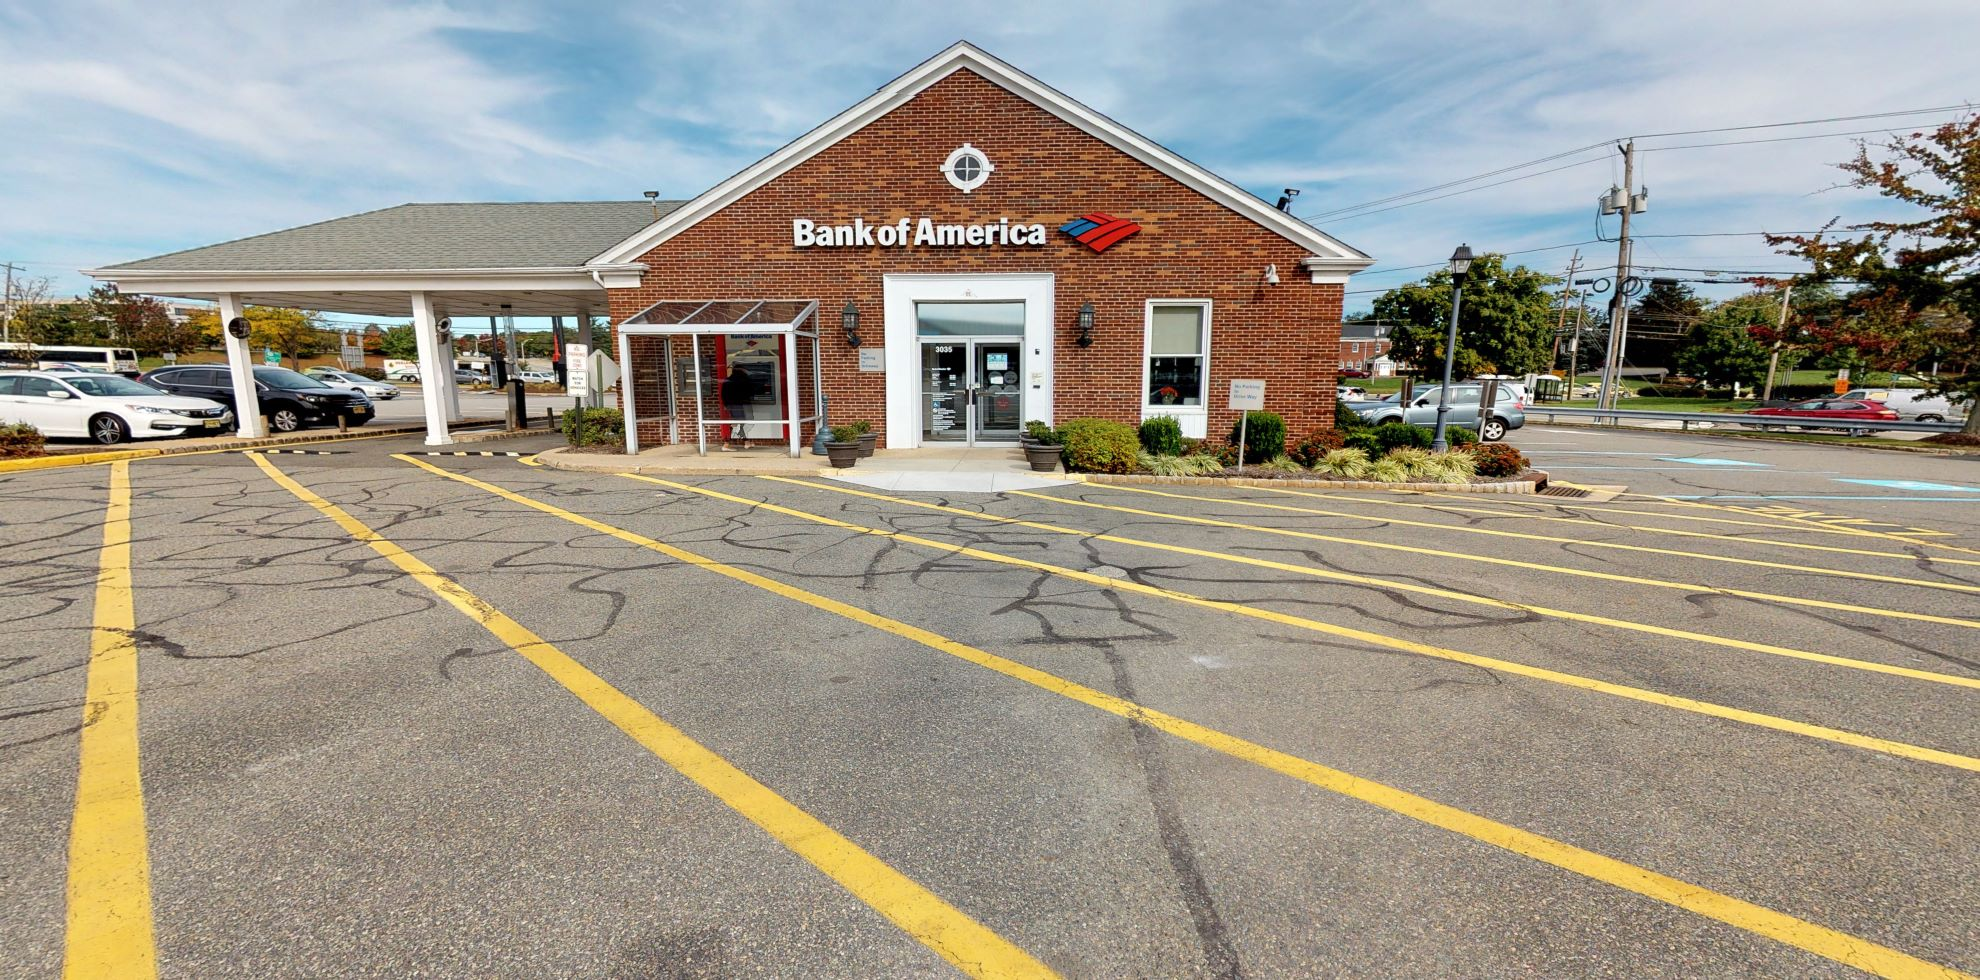 Bank of America financial center with drive-thru ATM | 3035 Route 46, Parsippany, NJ 07054